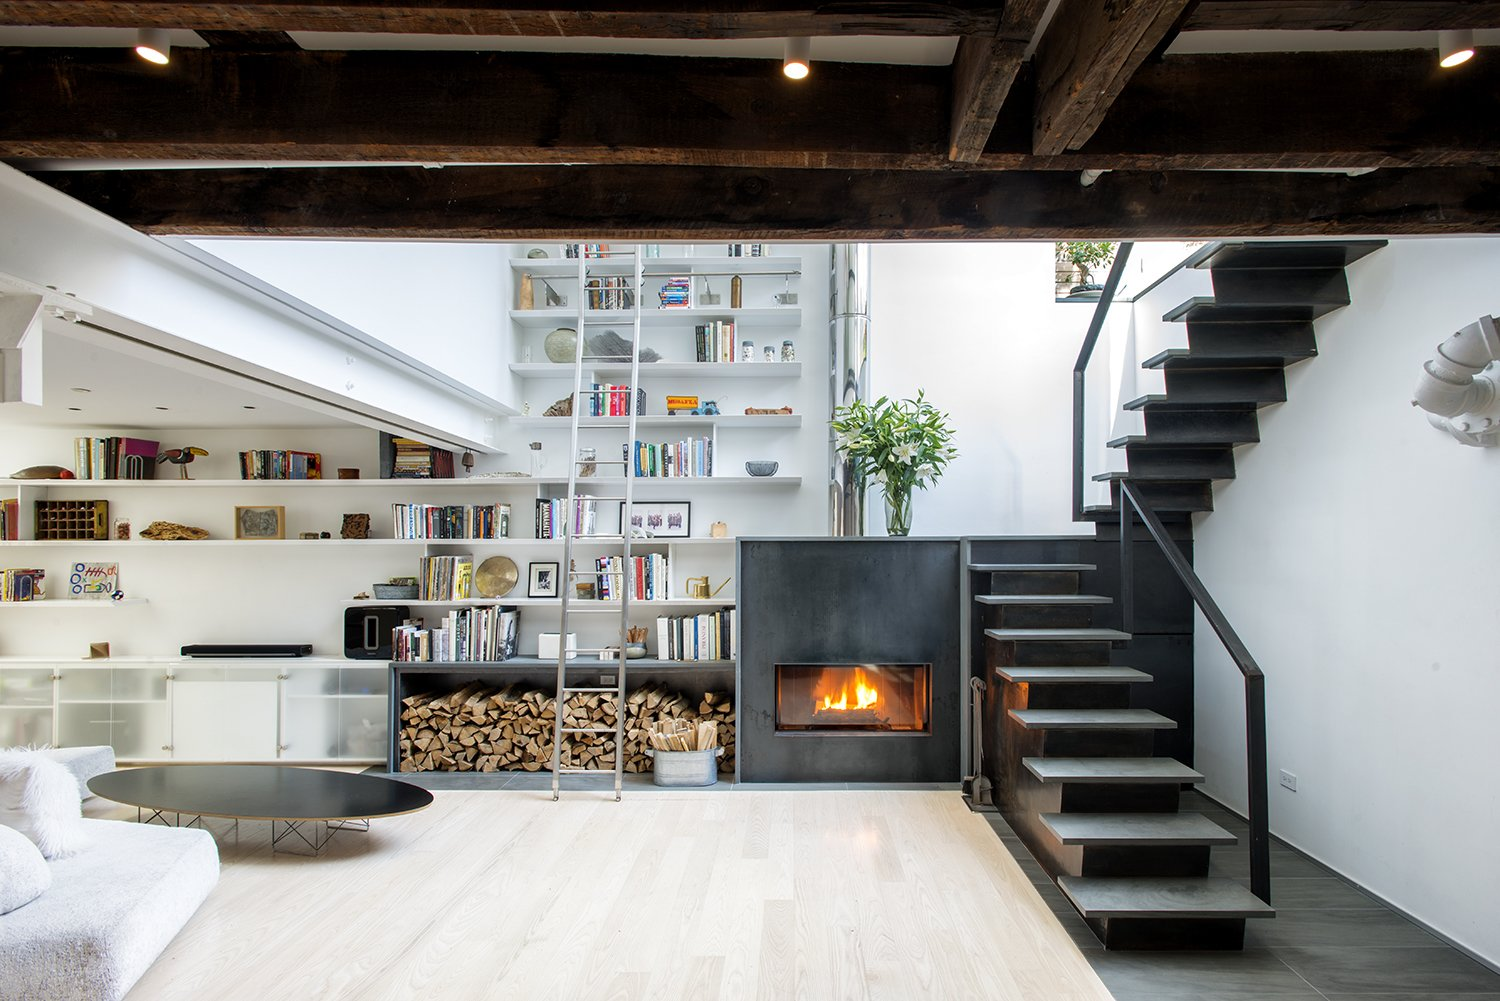 Living Room, Storage, Ceiling Lighting, Coffee Tables, Shelves, Wood Burning Fireplace, Light Hardwood Floor, Sofa, and Bookcase  Photo 1 of 10 in A Rooftop Addition on a 19th-Century Building Suits a Growing Family's Needs